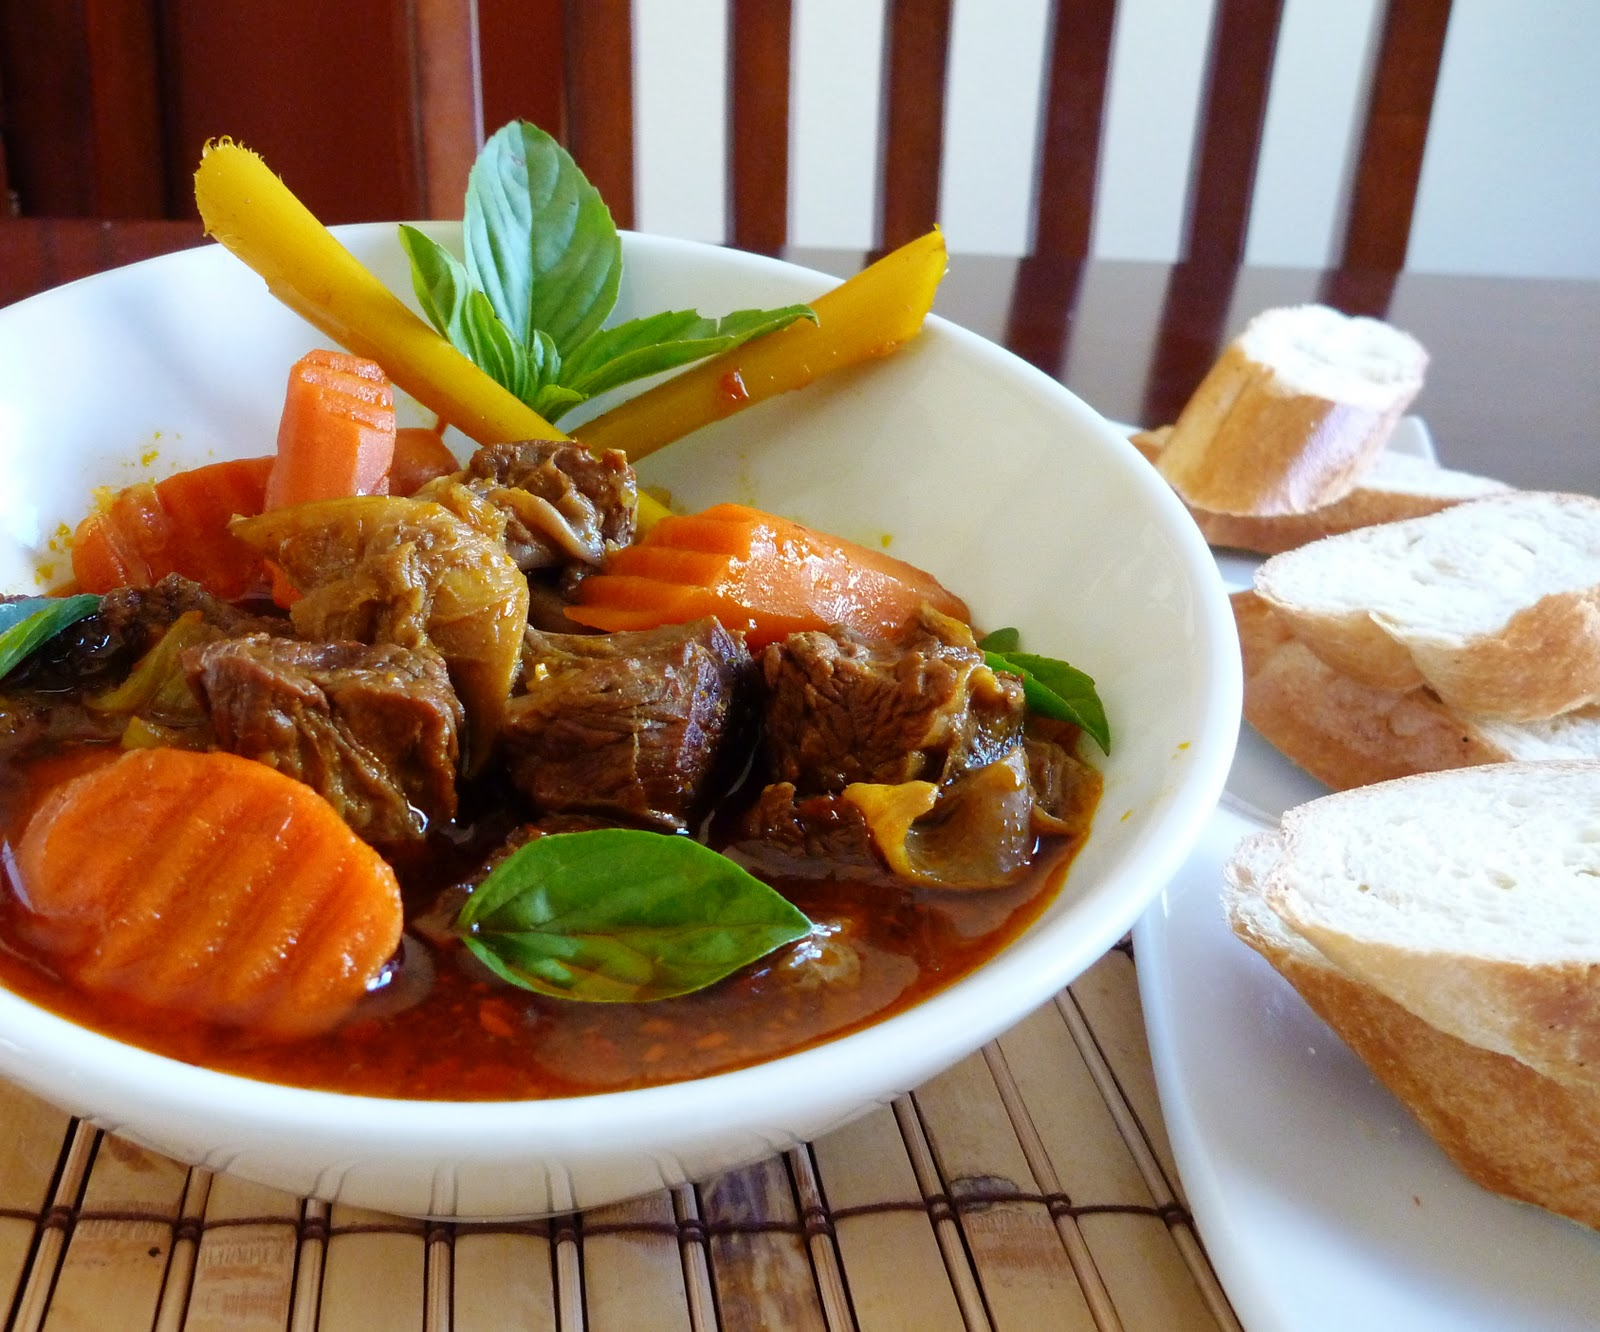 The Spices Of Life . . .: Bò Kho (Vietnamese Beef Stew)